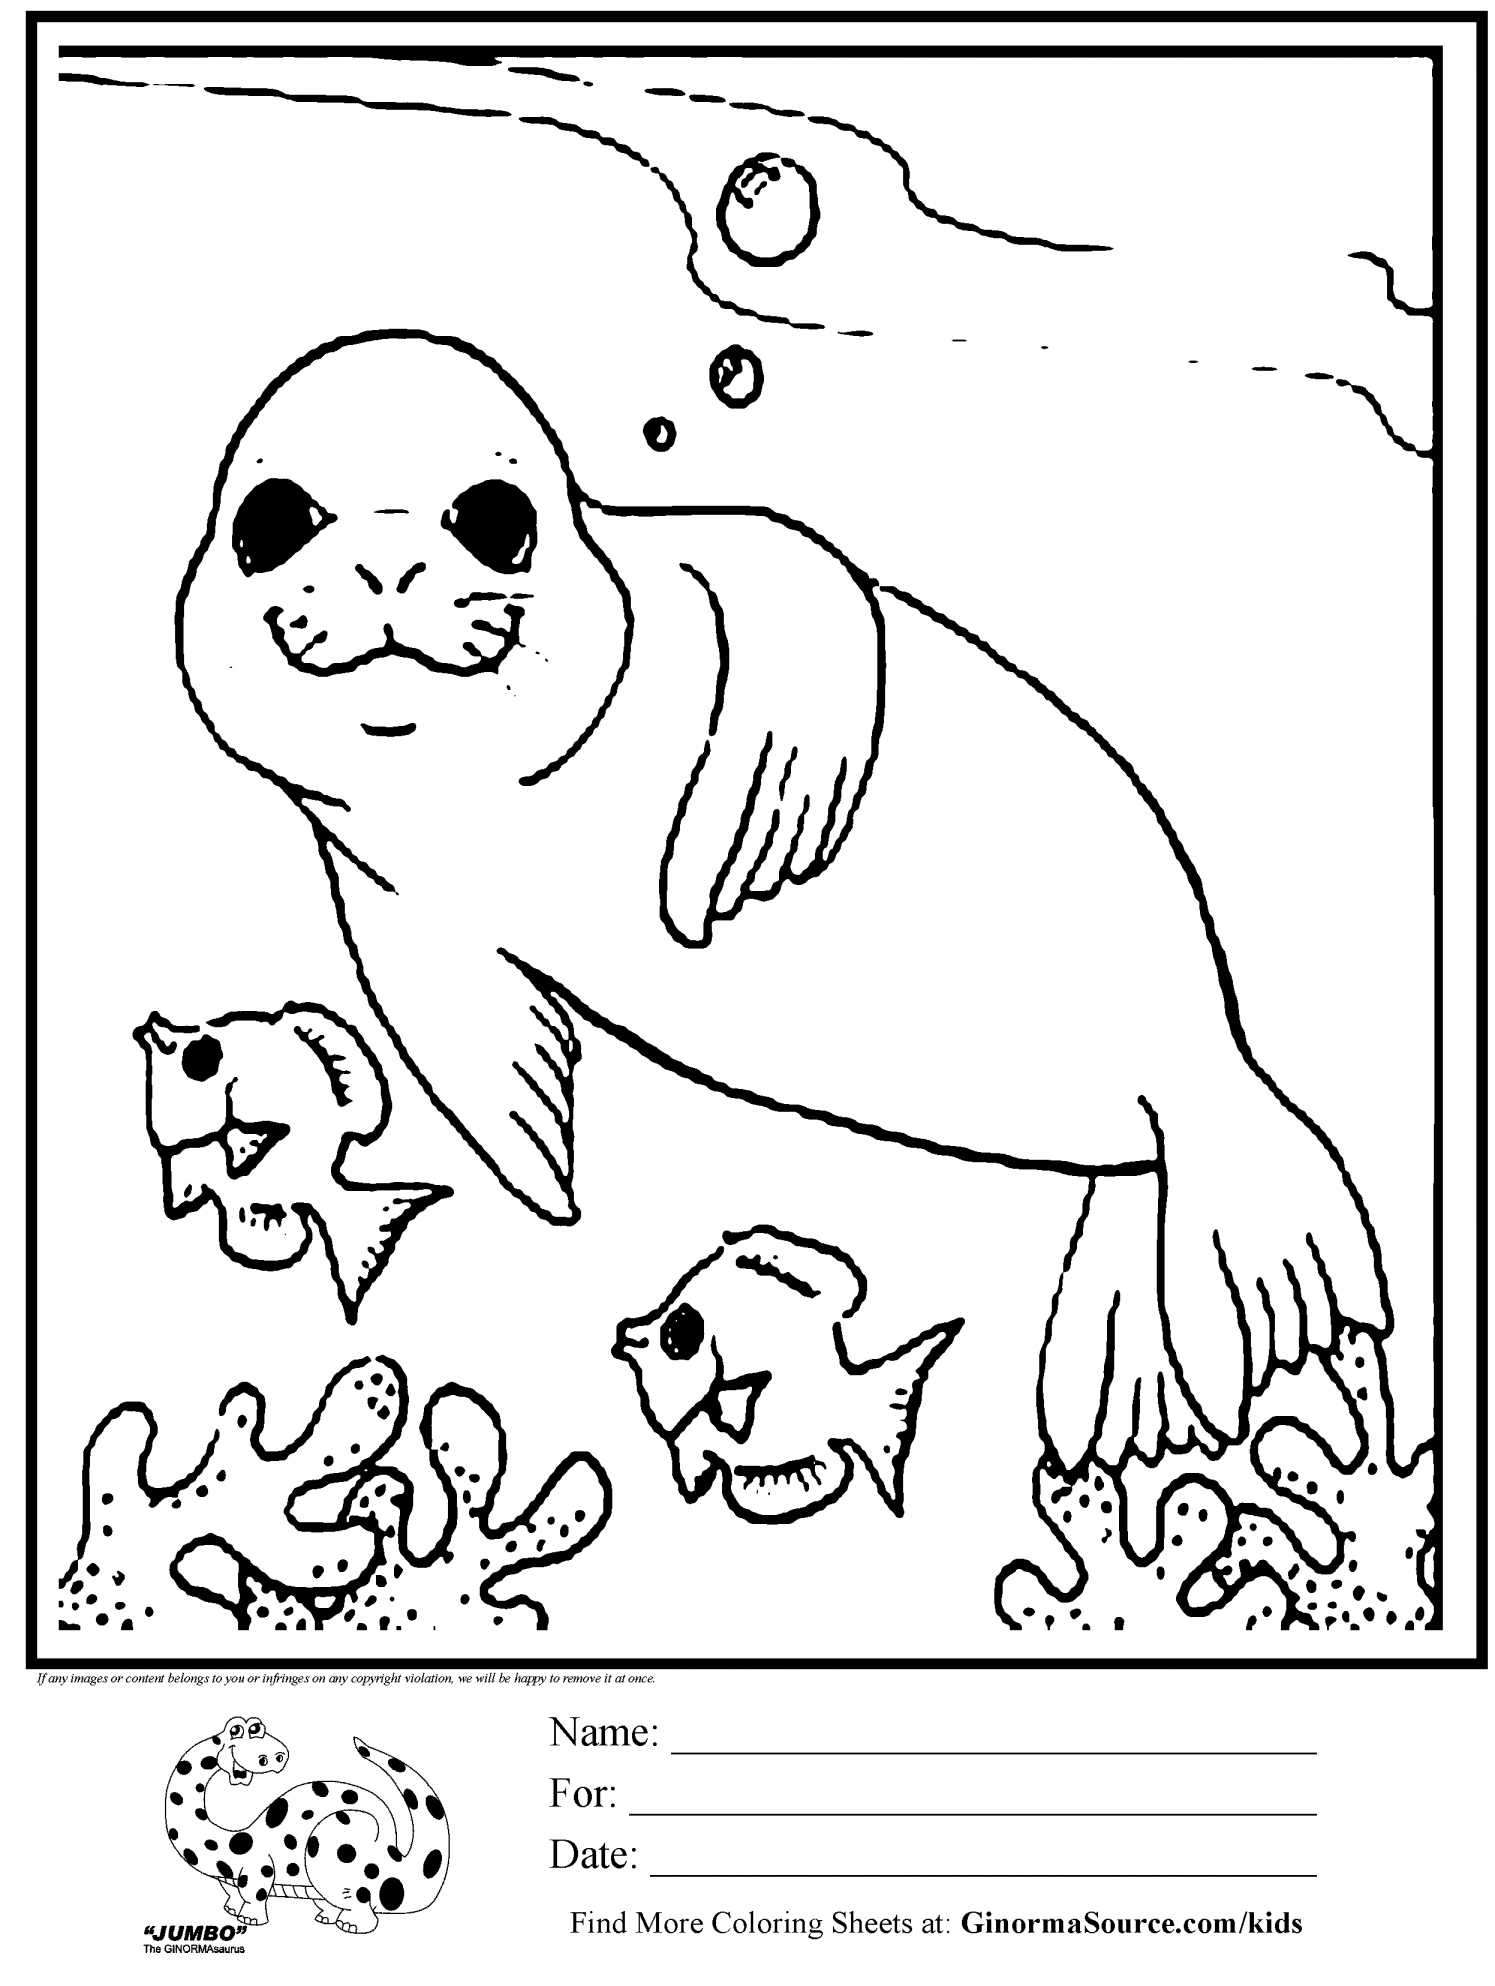 Merry Christmas Jesus Coloring Pages With Awesome Baby Images 3000 Inspirational